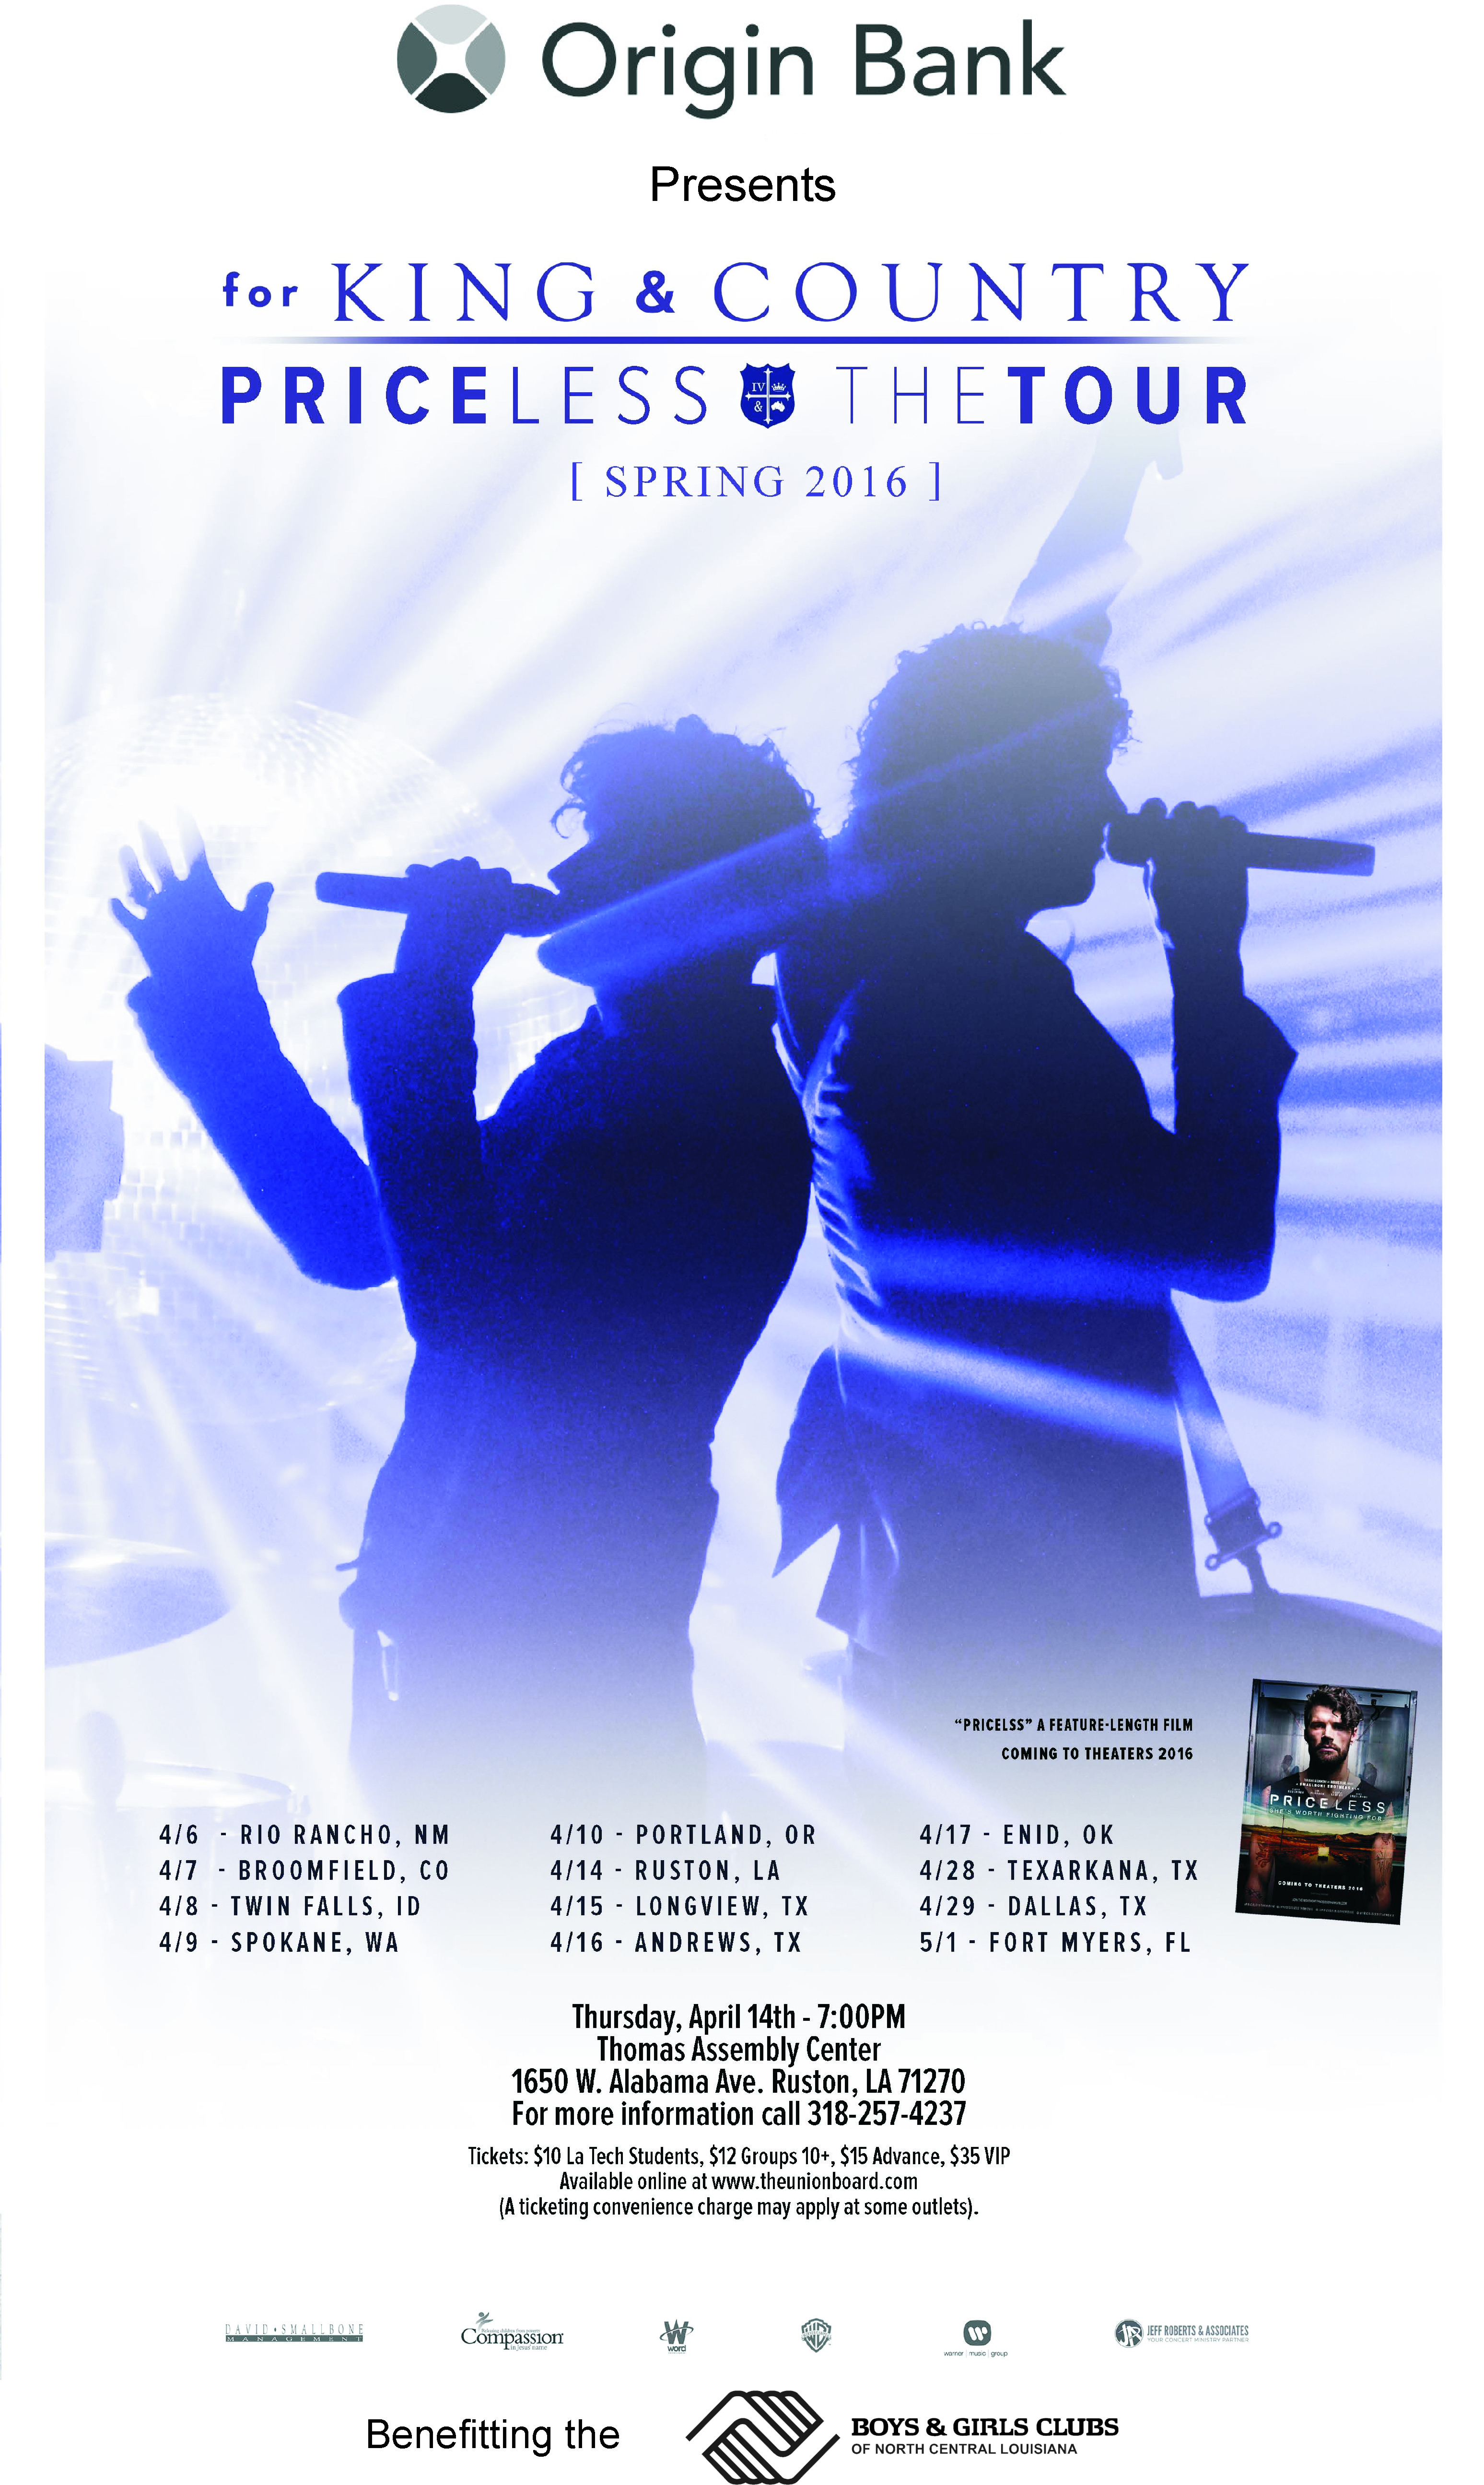 Priceless the Tour feat. for King & Country